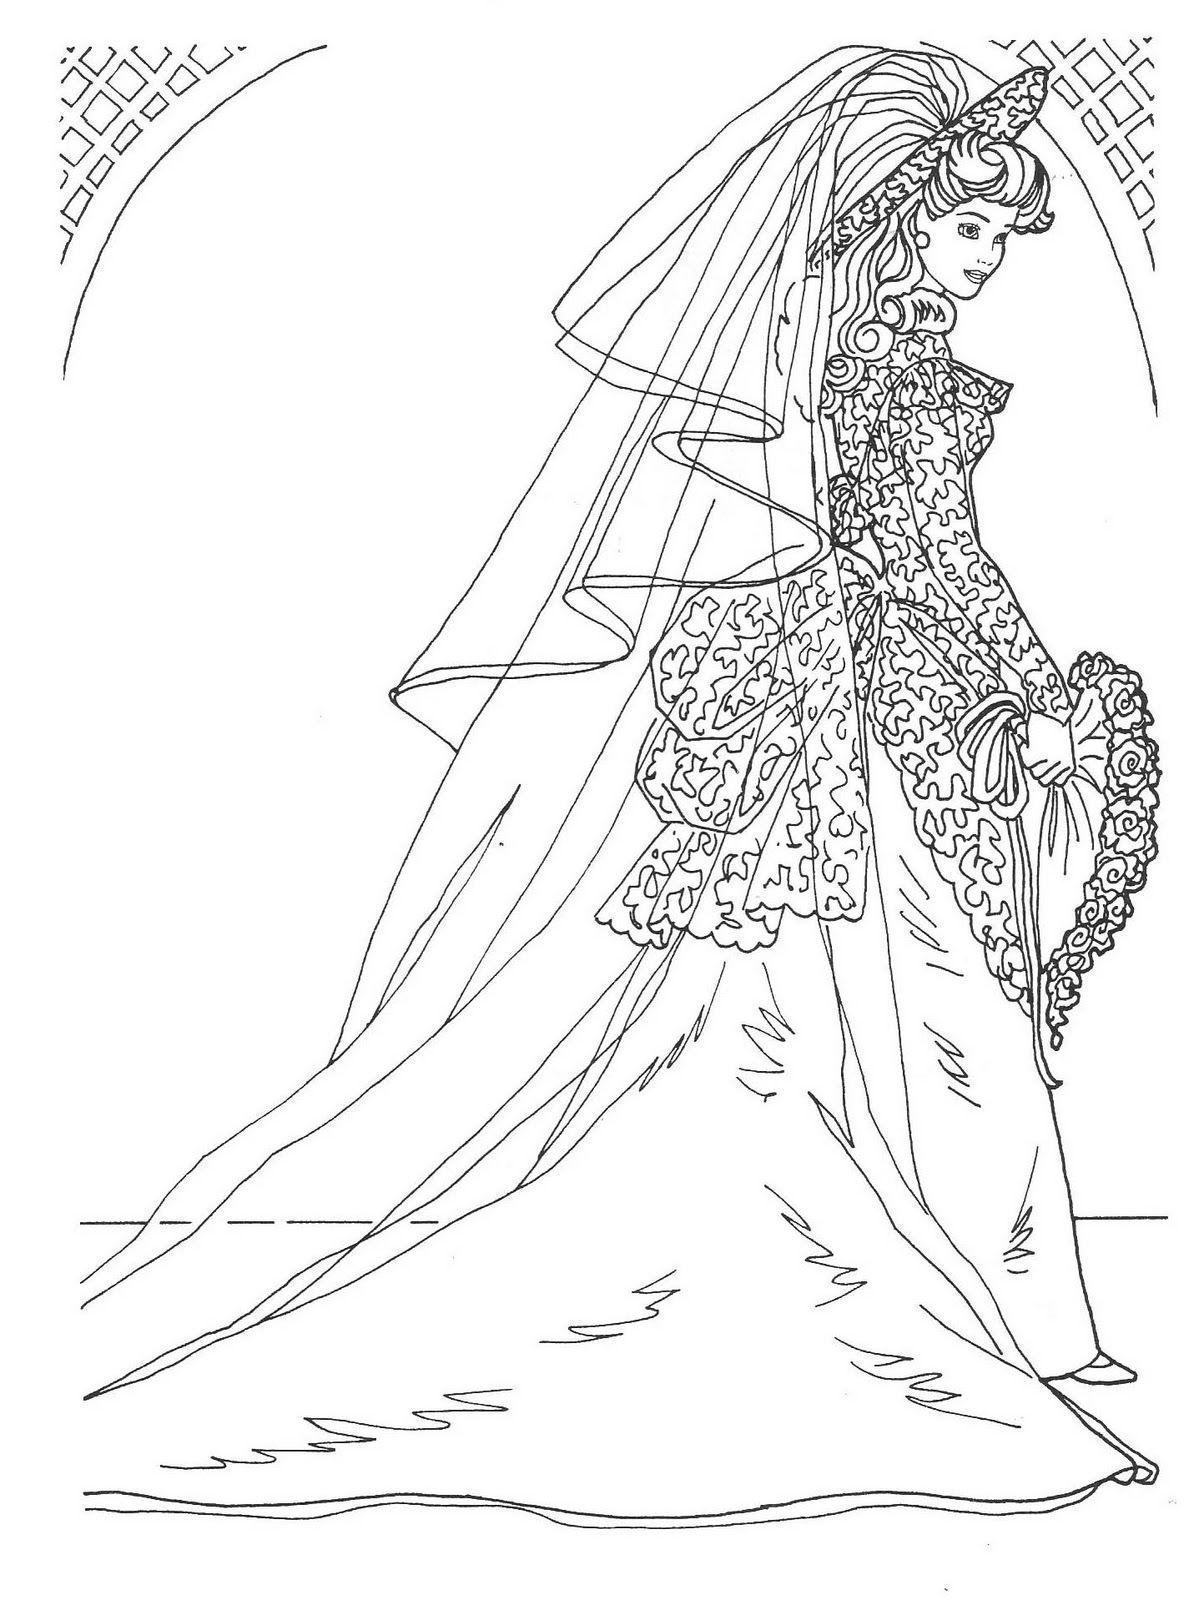 Fashion Coloring Pages Coloring Pages Wedding Day Barbie In Bridal Gown Coloring Pages Wedding Coloring Pages Barbie Coloring Pages Coloring Pages